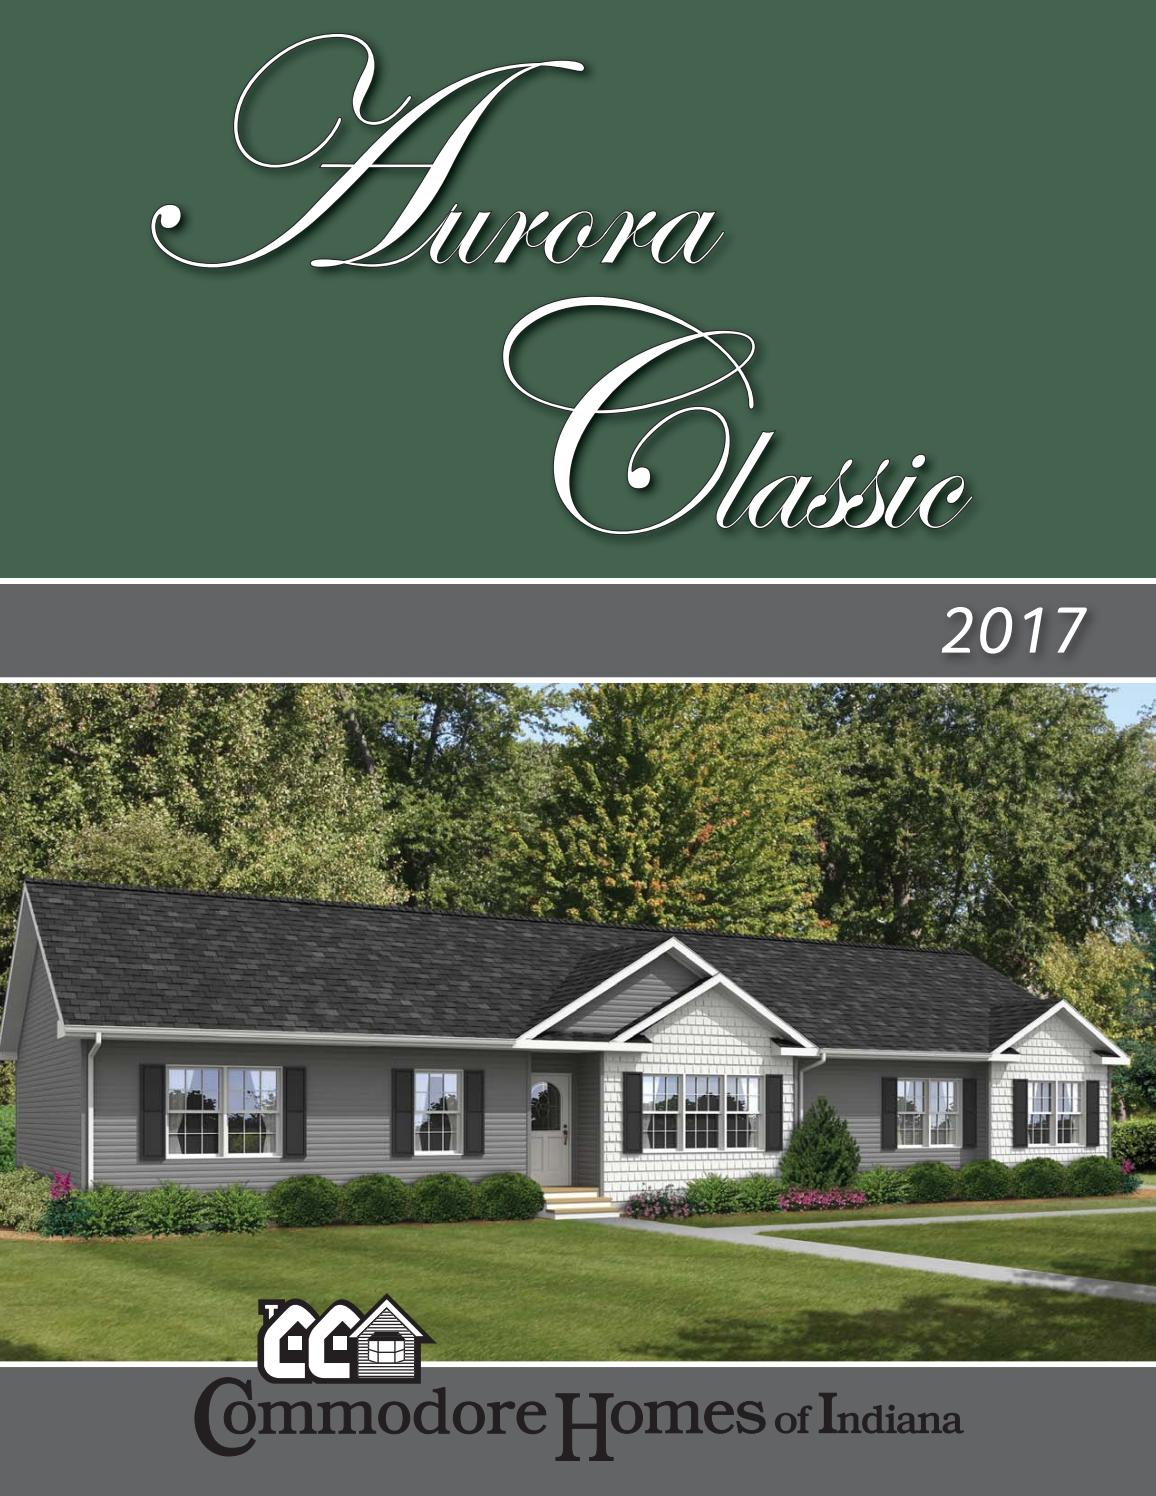 Commodore Homes Of Indiana Aurora Classic Ranch 2017 By